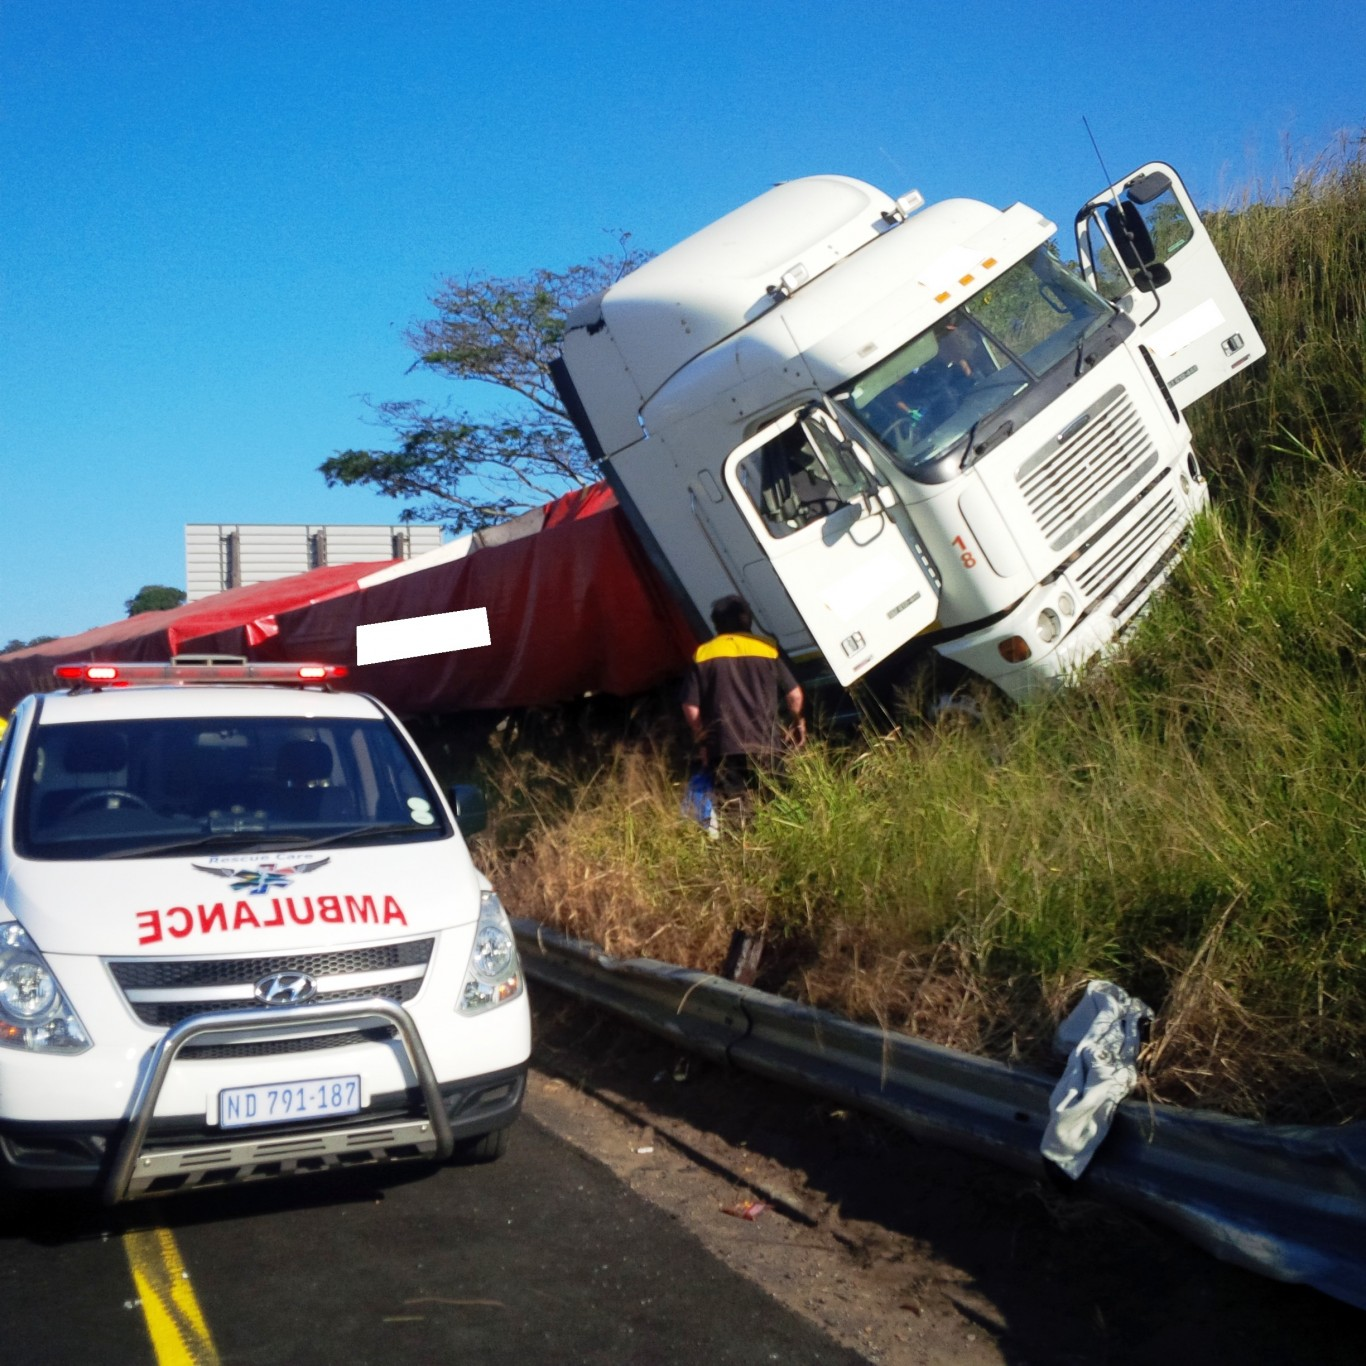 Driver injured in truck crash on the N3 Durban bound opposite the